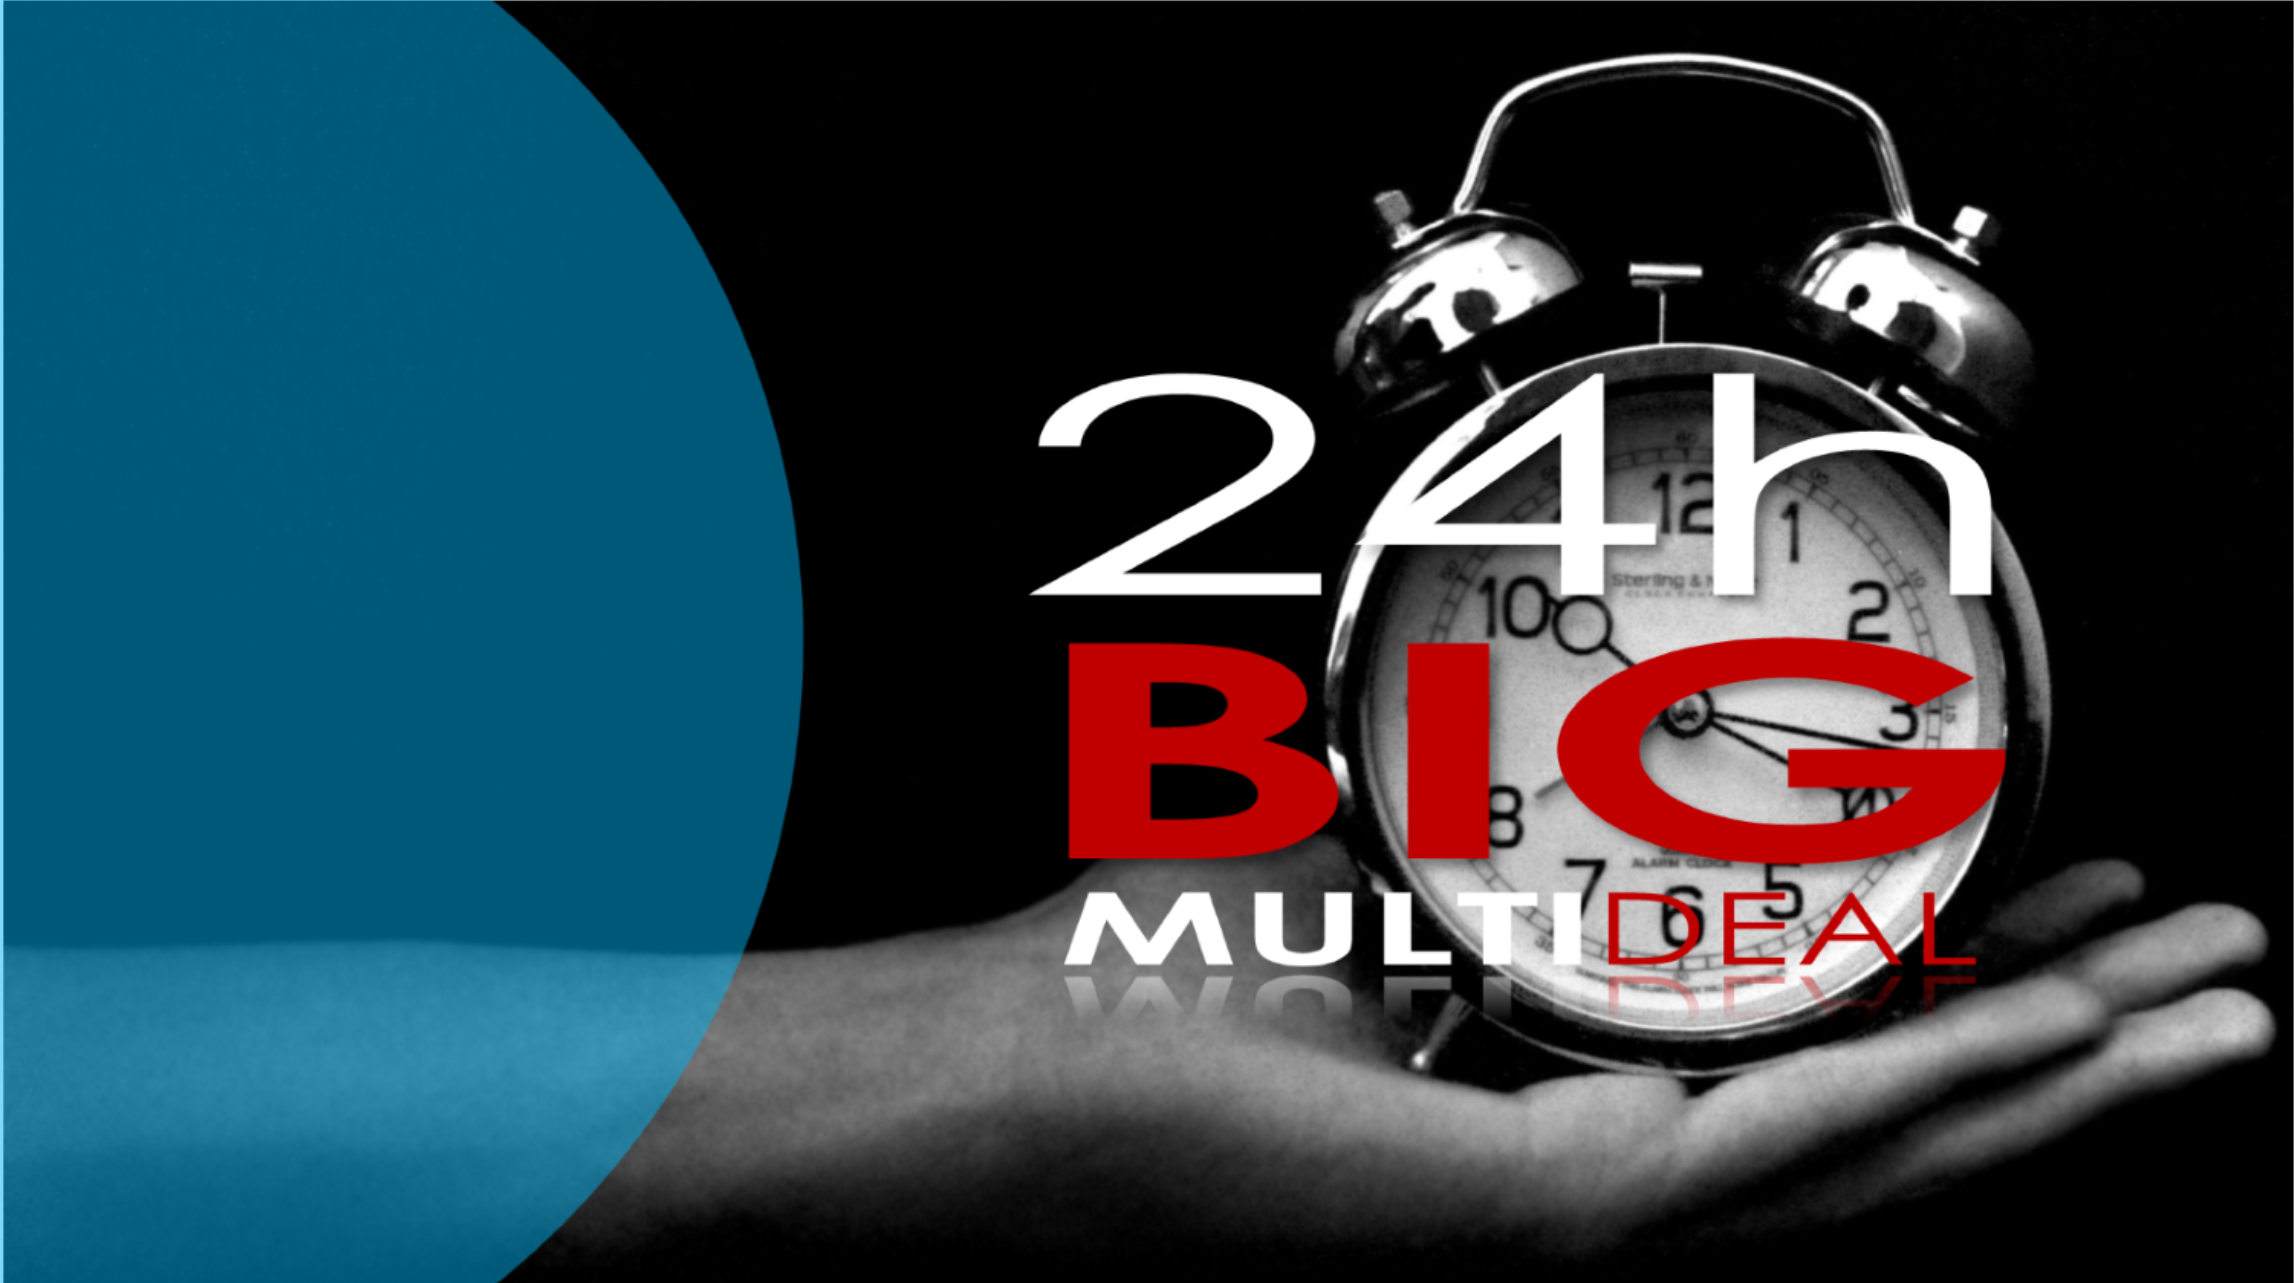 24h-BIG-MULTIDEAL